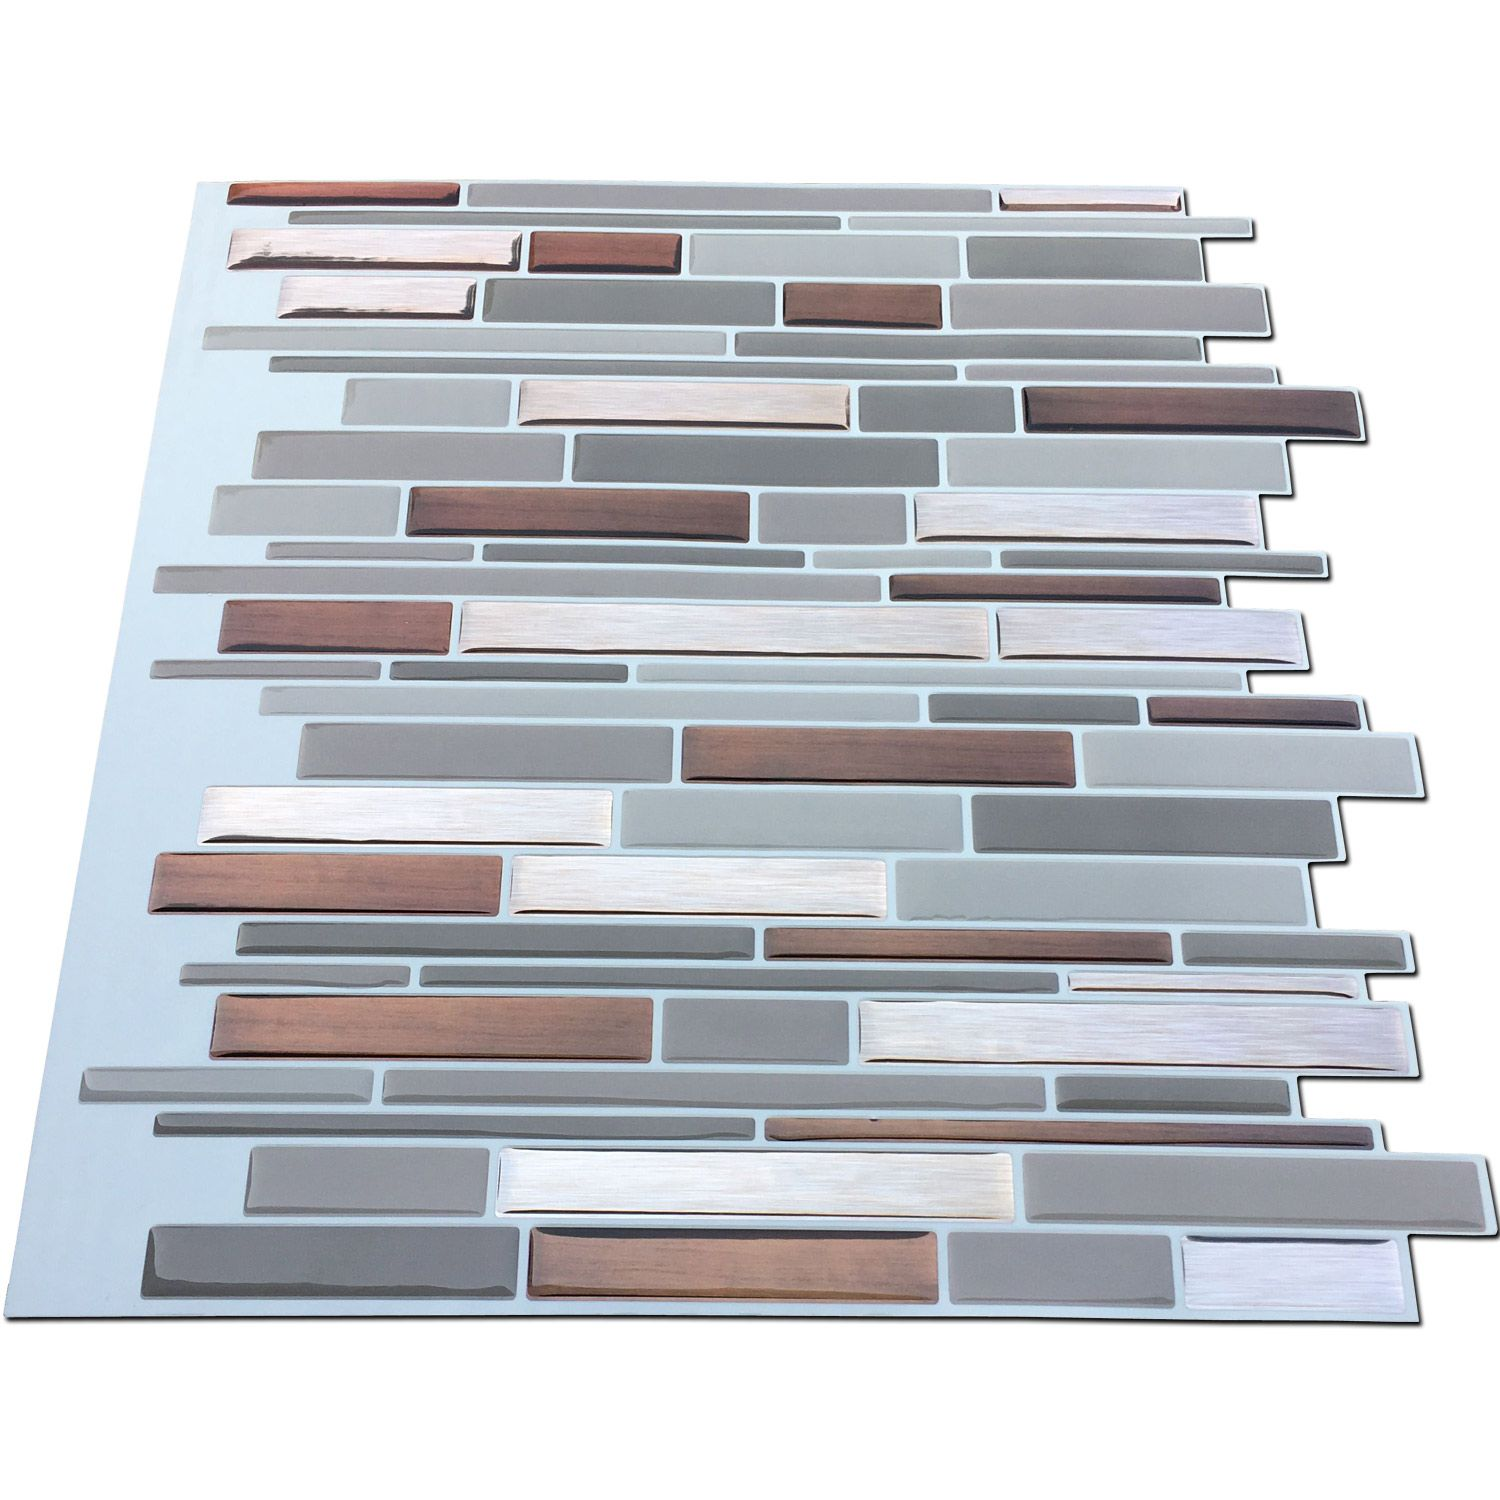 A17019 - Peel and Stick Mosaic Smart Tiles, 12 inch x 12inch Set of ...